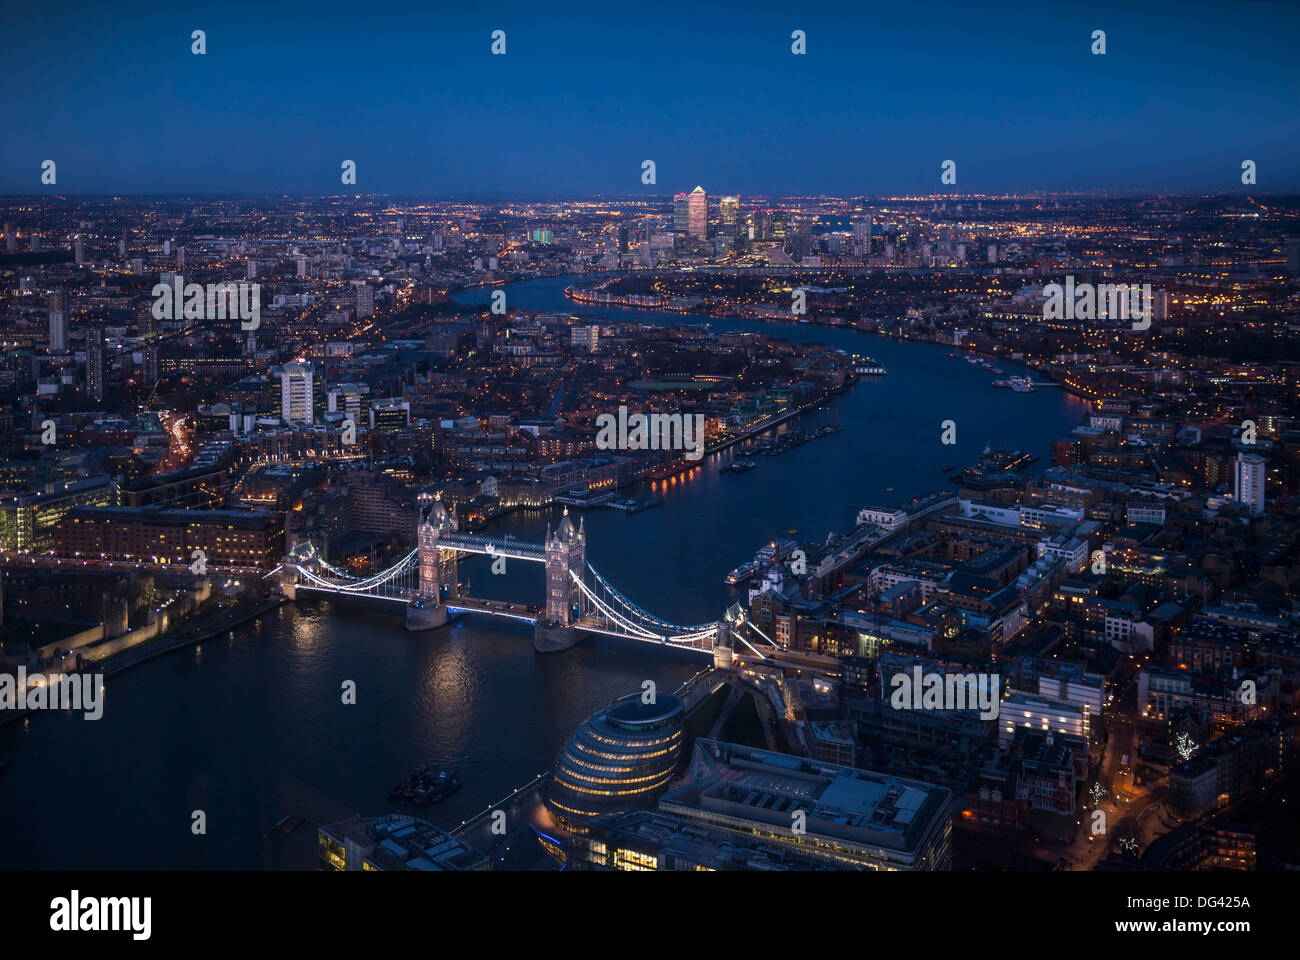 View from The Shard, London, England, United Kingdom, Europe Stock Photo